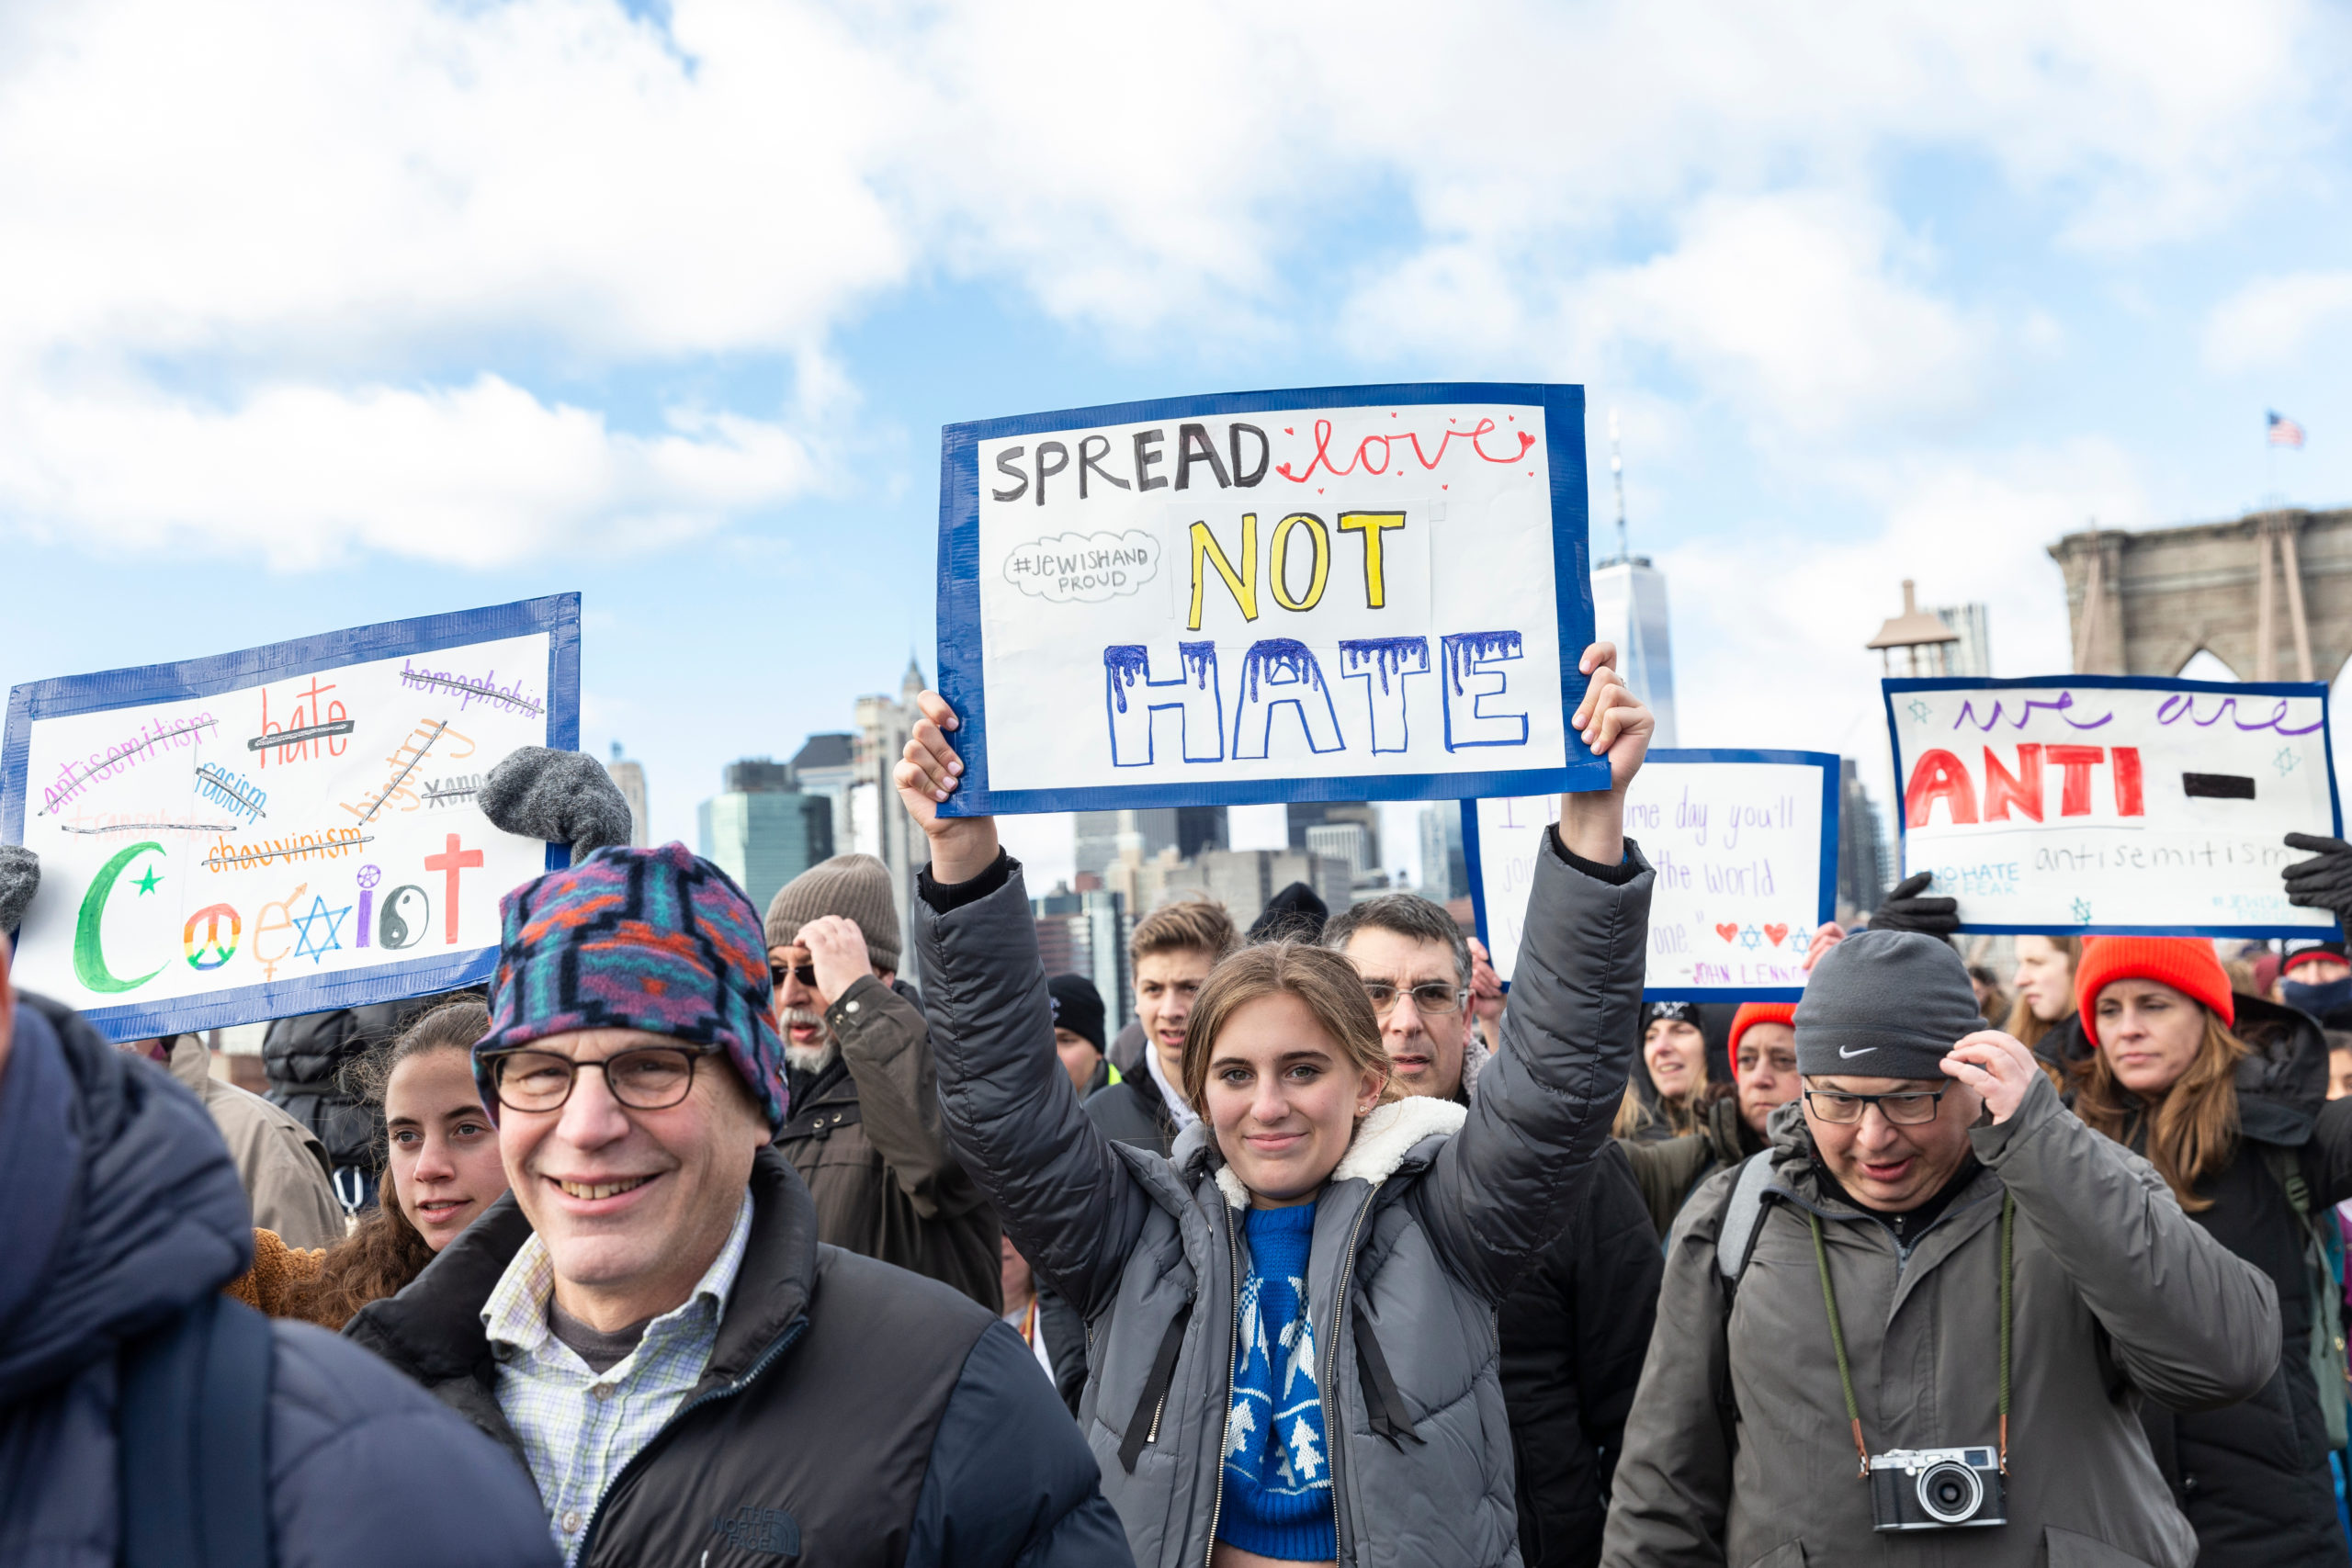 Thousands of people participate in No Hate, No Fear Jewish Solidarity March in response to anti-semitic attacks in and around city across Brooklyn Bridge. (Lev Radin/Shutterstock)